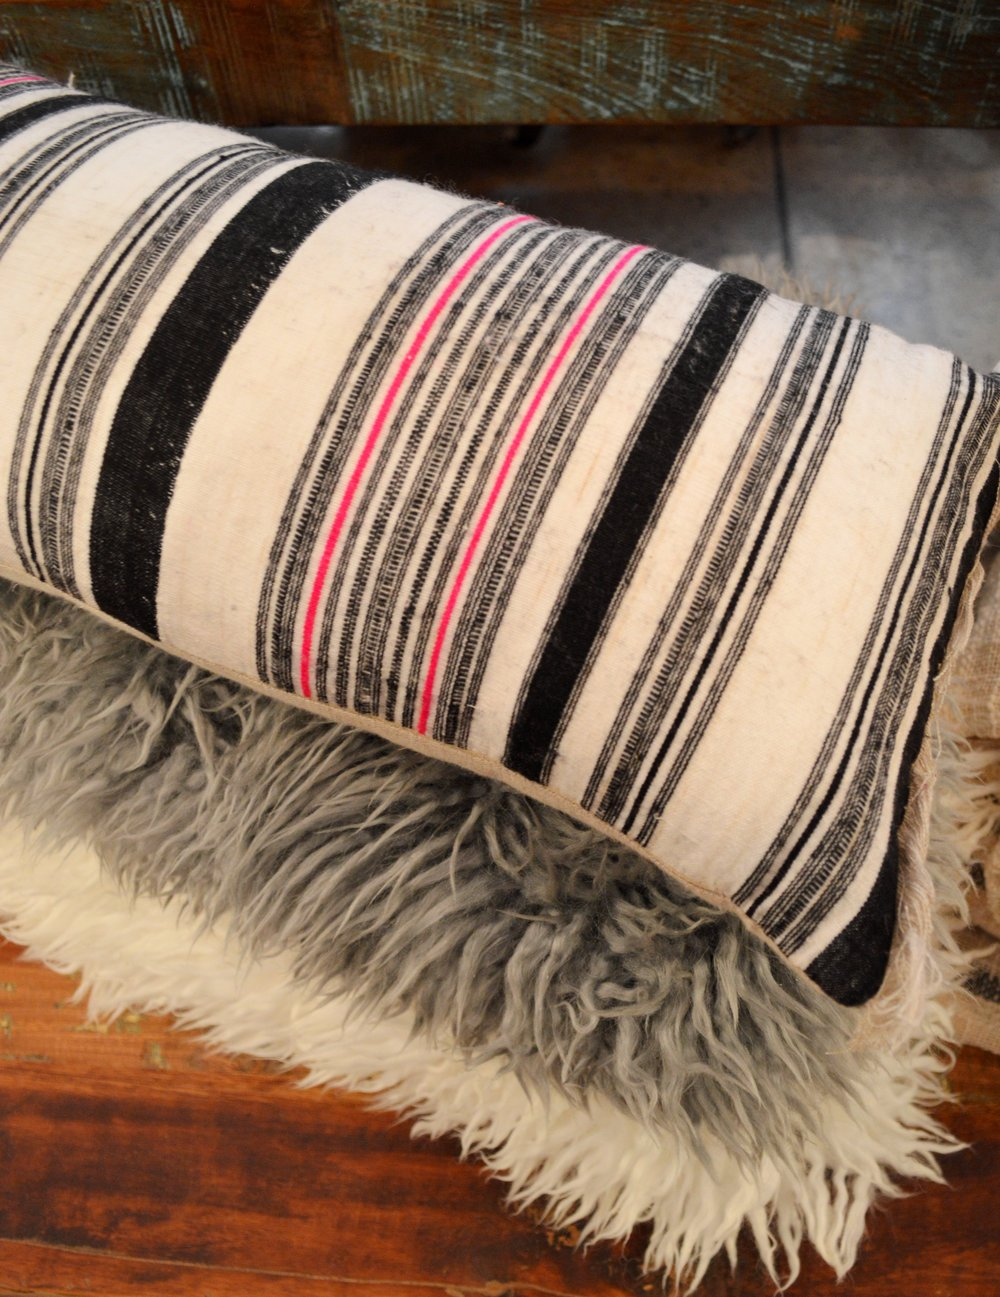 Vintage Fabric Cushion £34.95 and Yeti Sheepskin Rugs £90.00